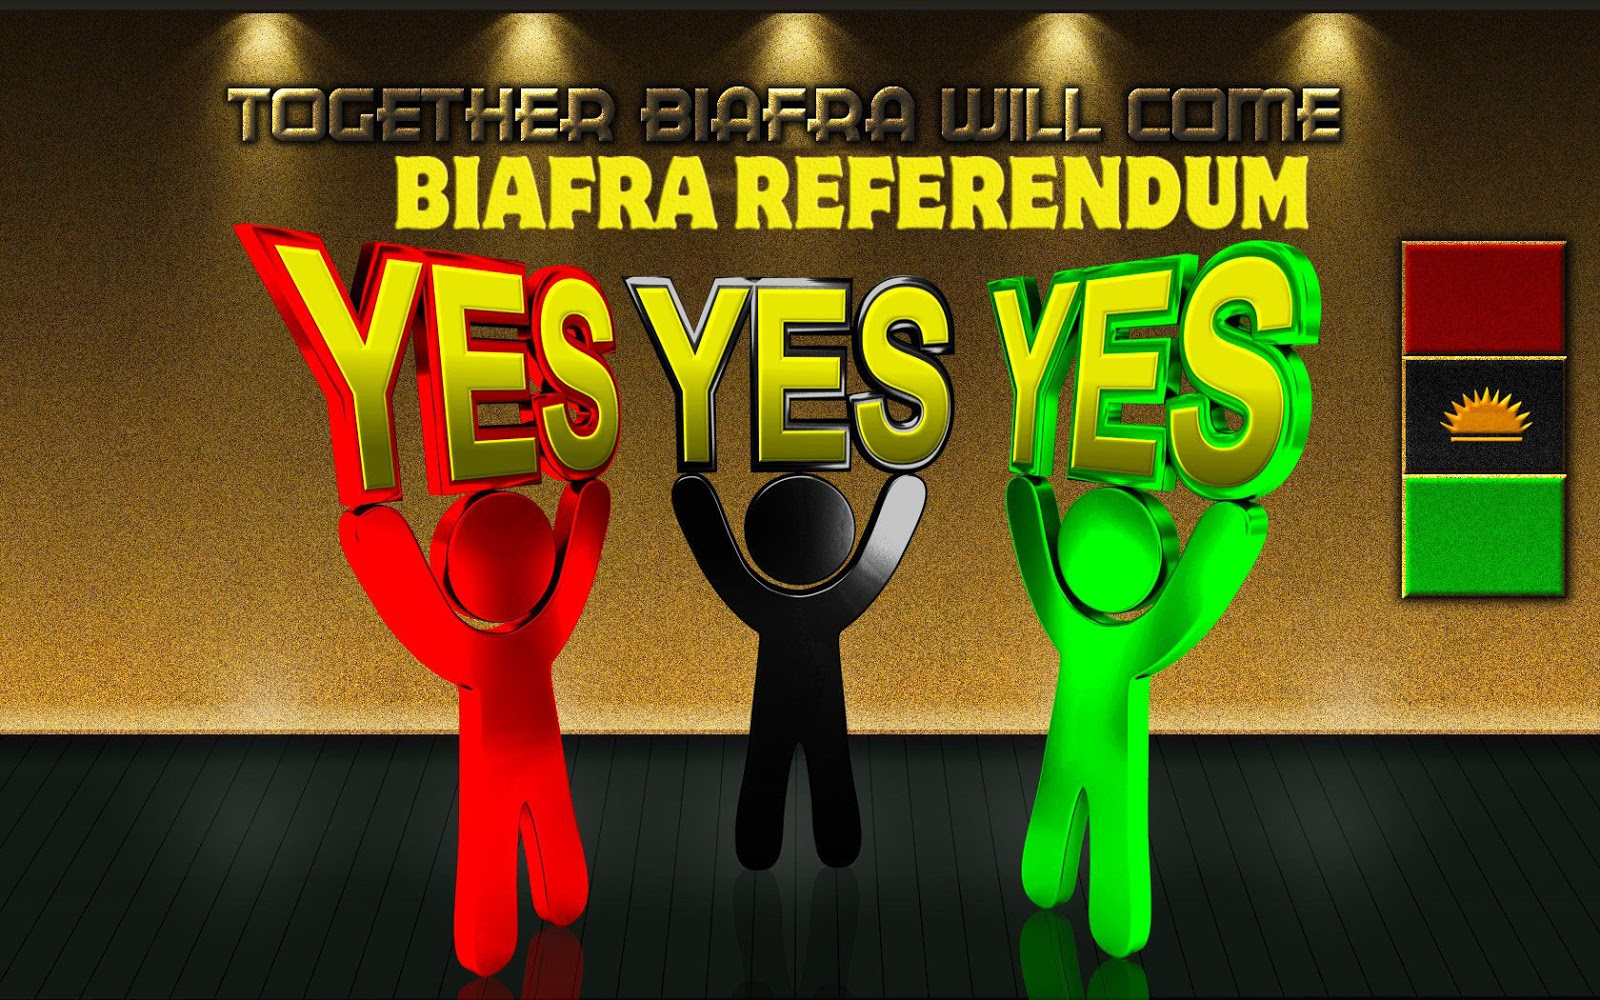 AS THE FEVER AND FEAR OF BIAFRA REFERENDUM GRIPS NIGERIA AND